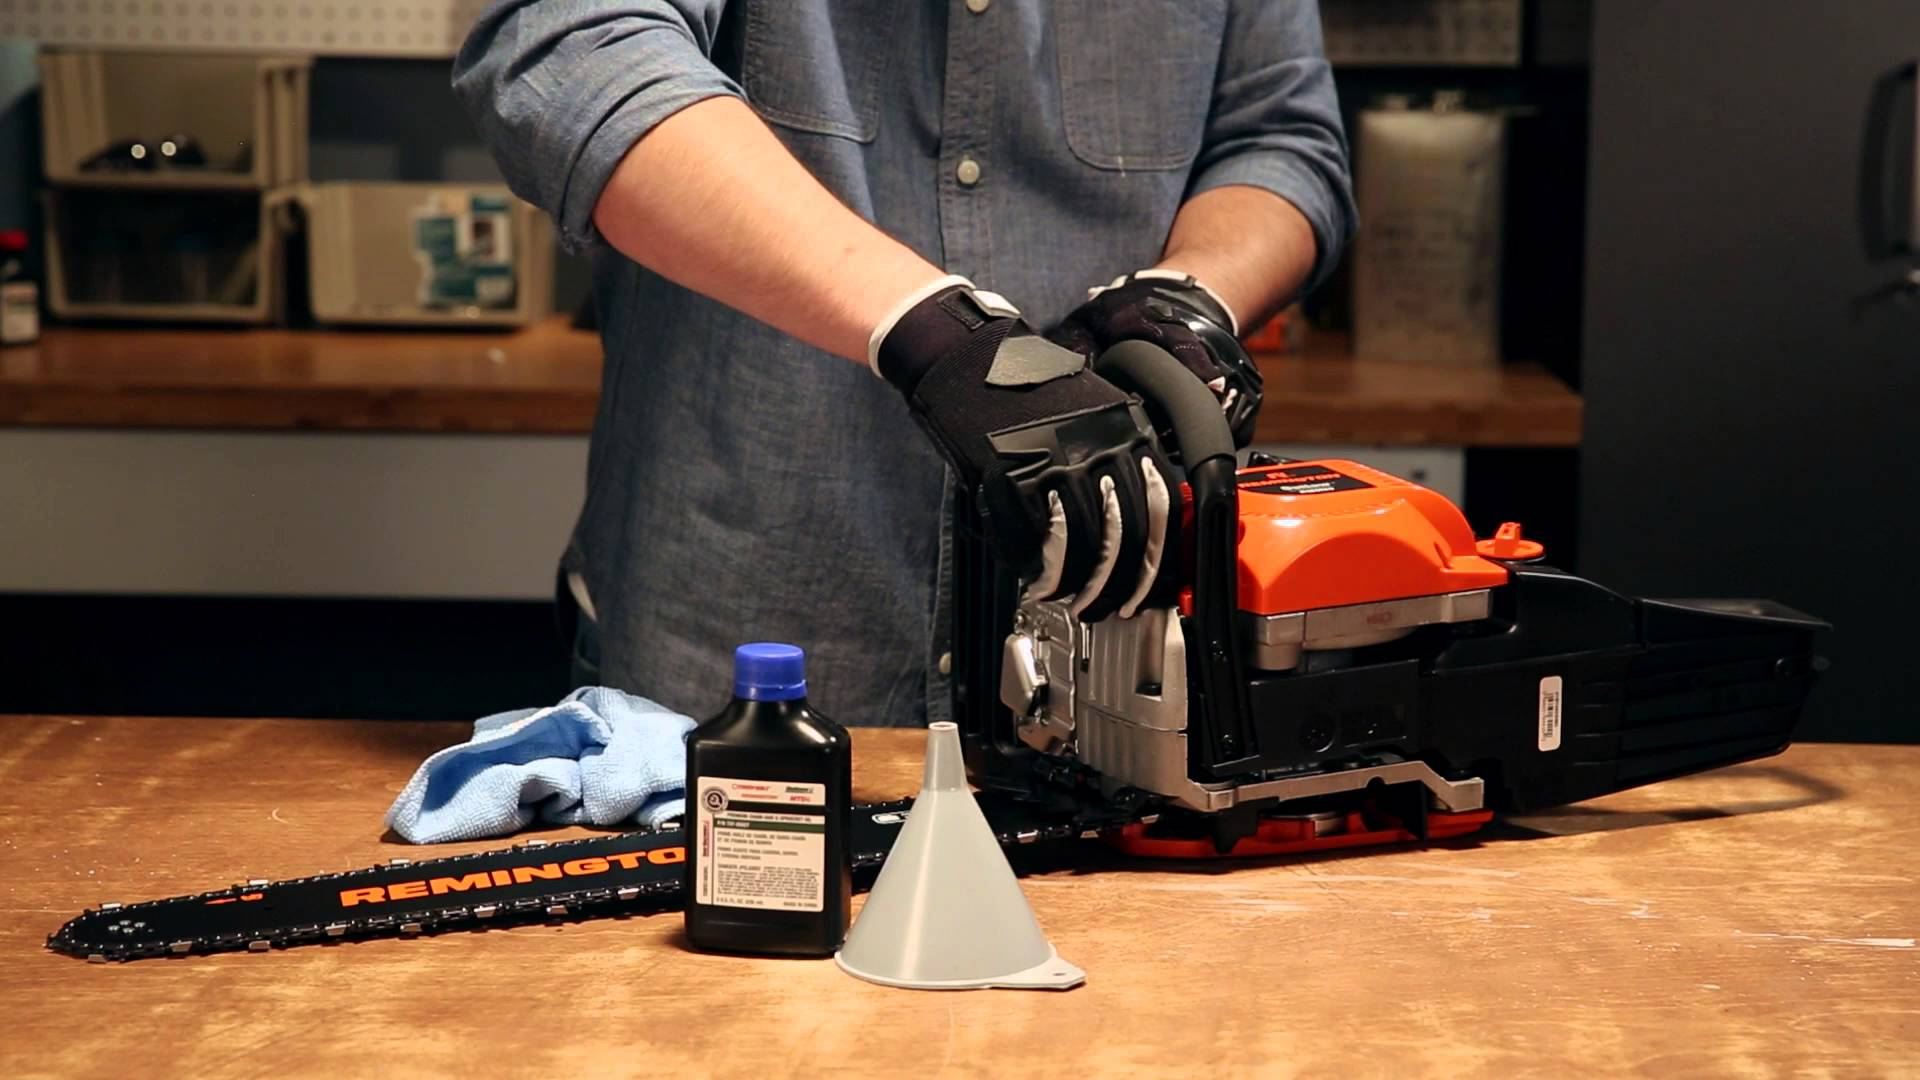 Types of Oils For an Electric Chainsaw – How To Refill Oil